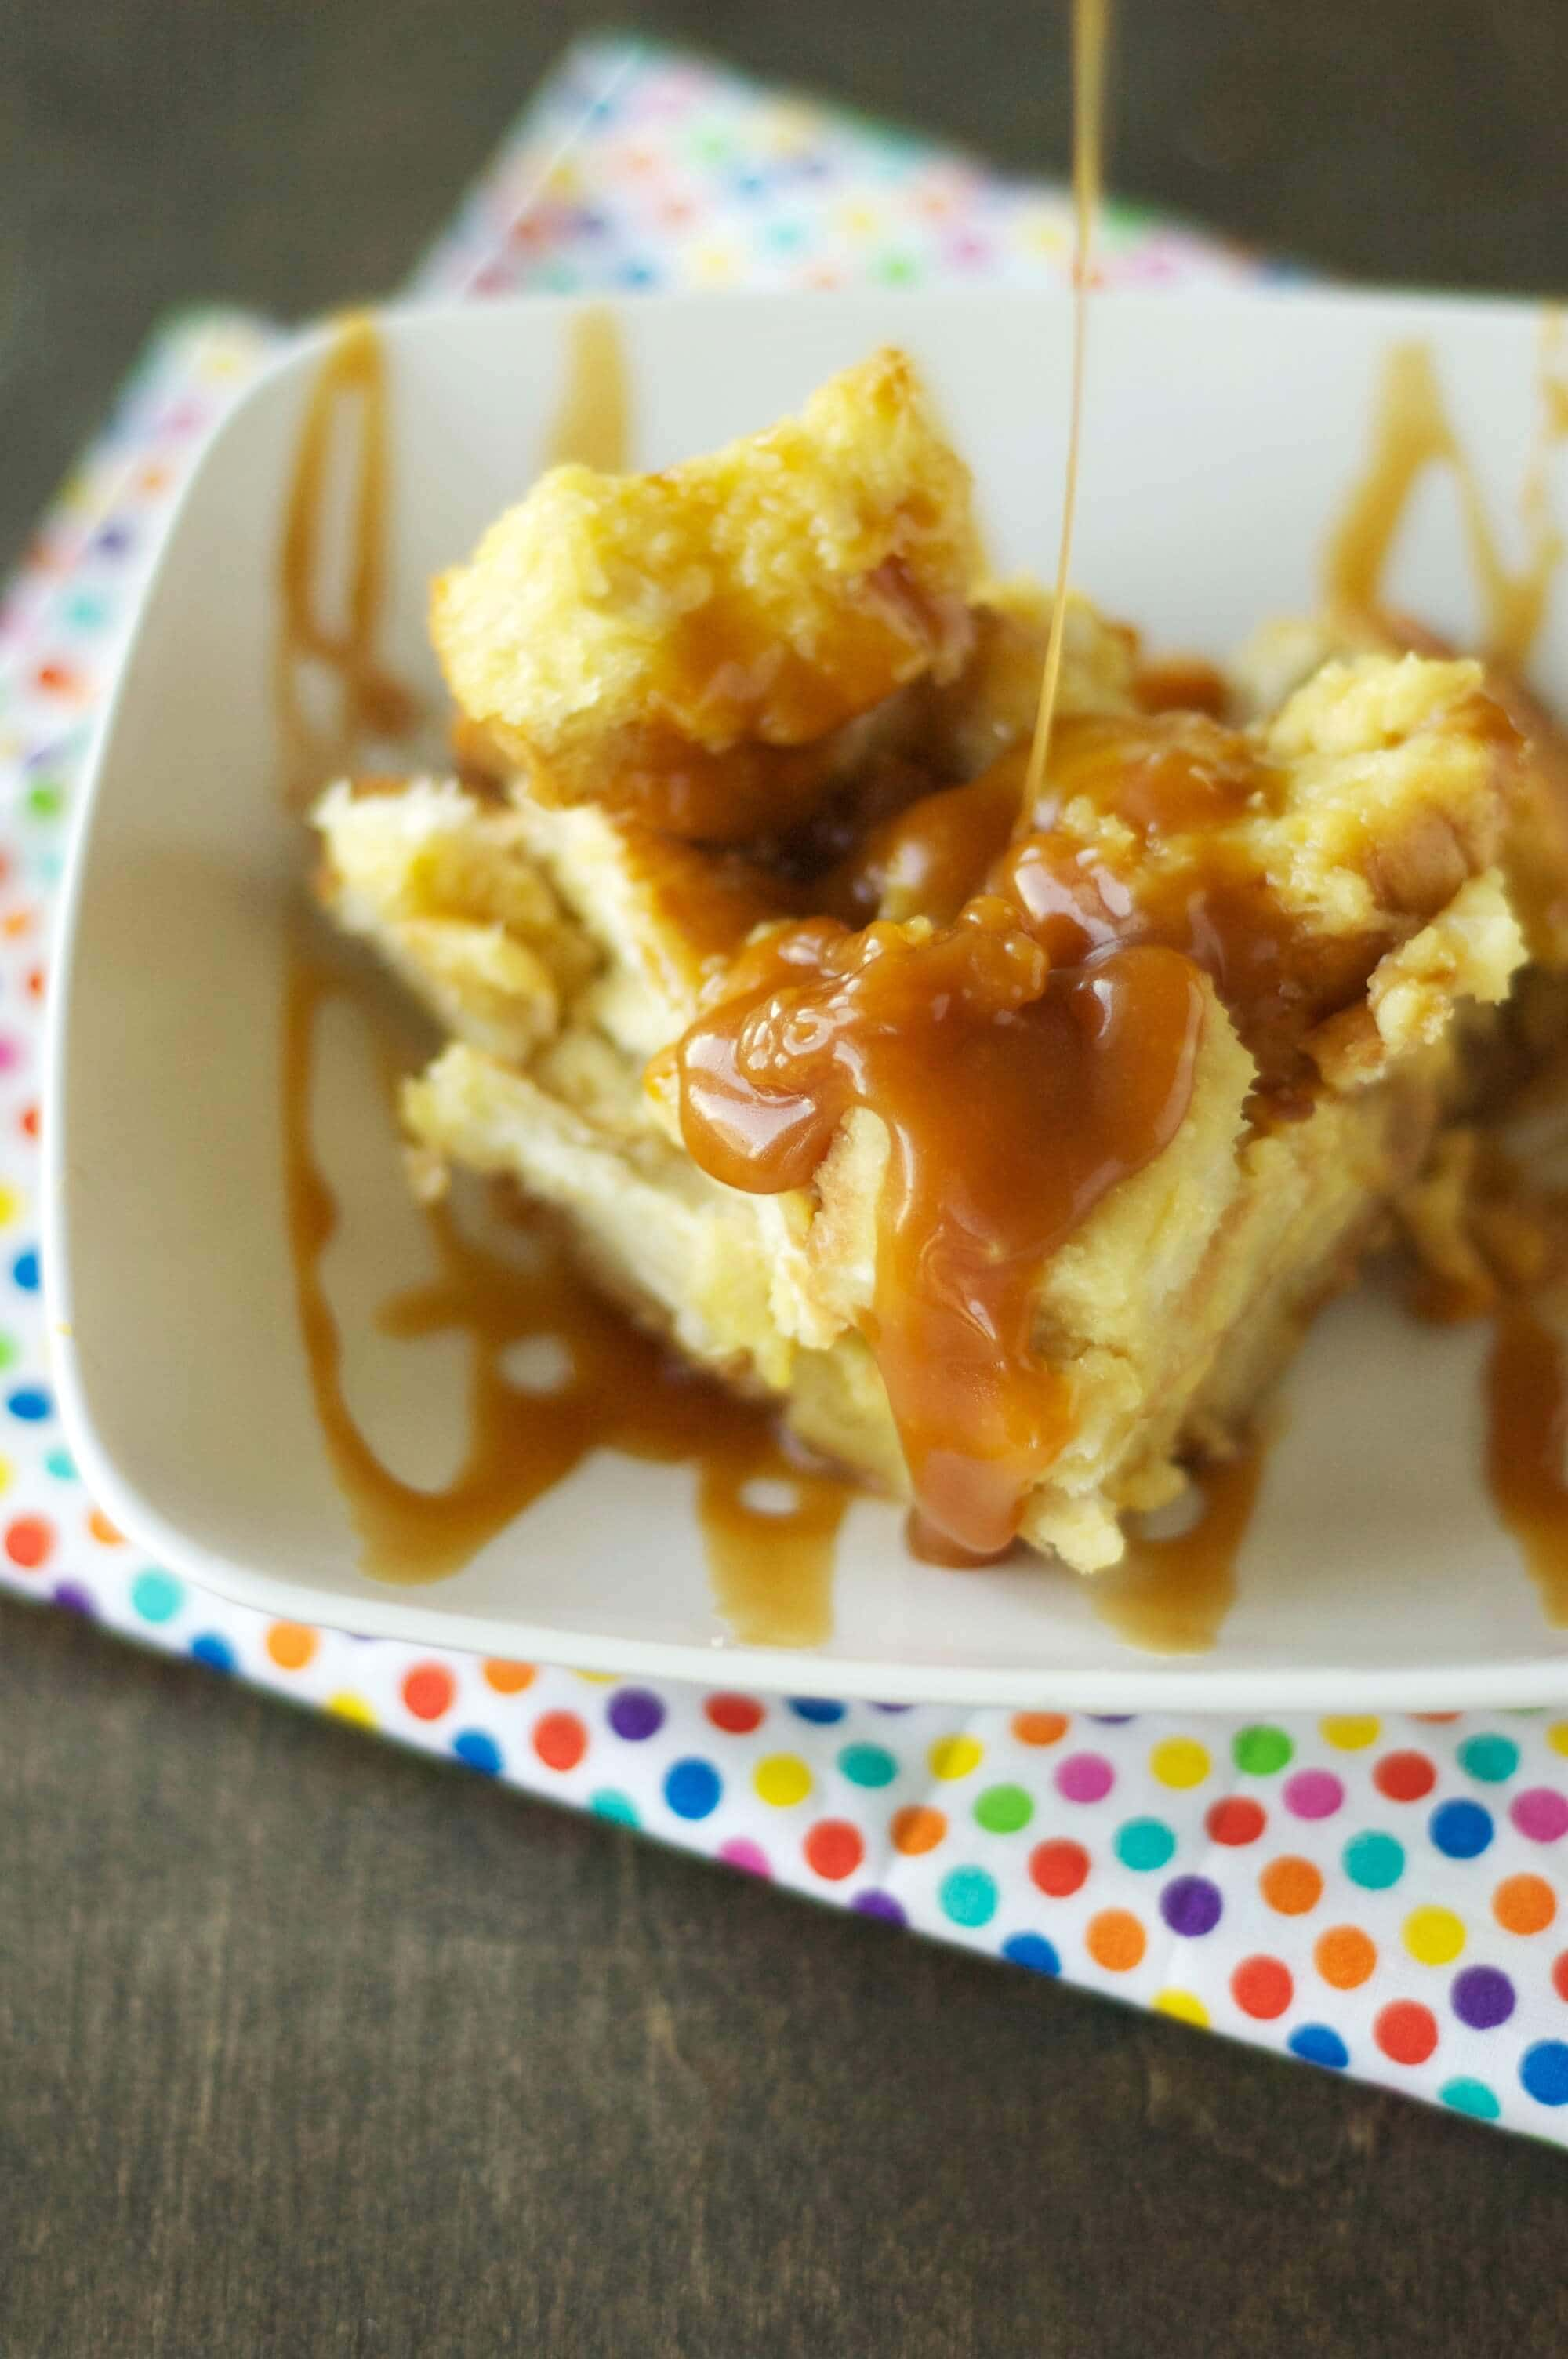 bread pudding being drizzled with salted caramel sauce in white bowl on polka dot napkin